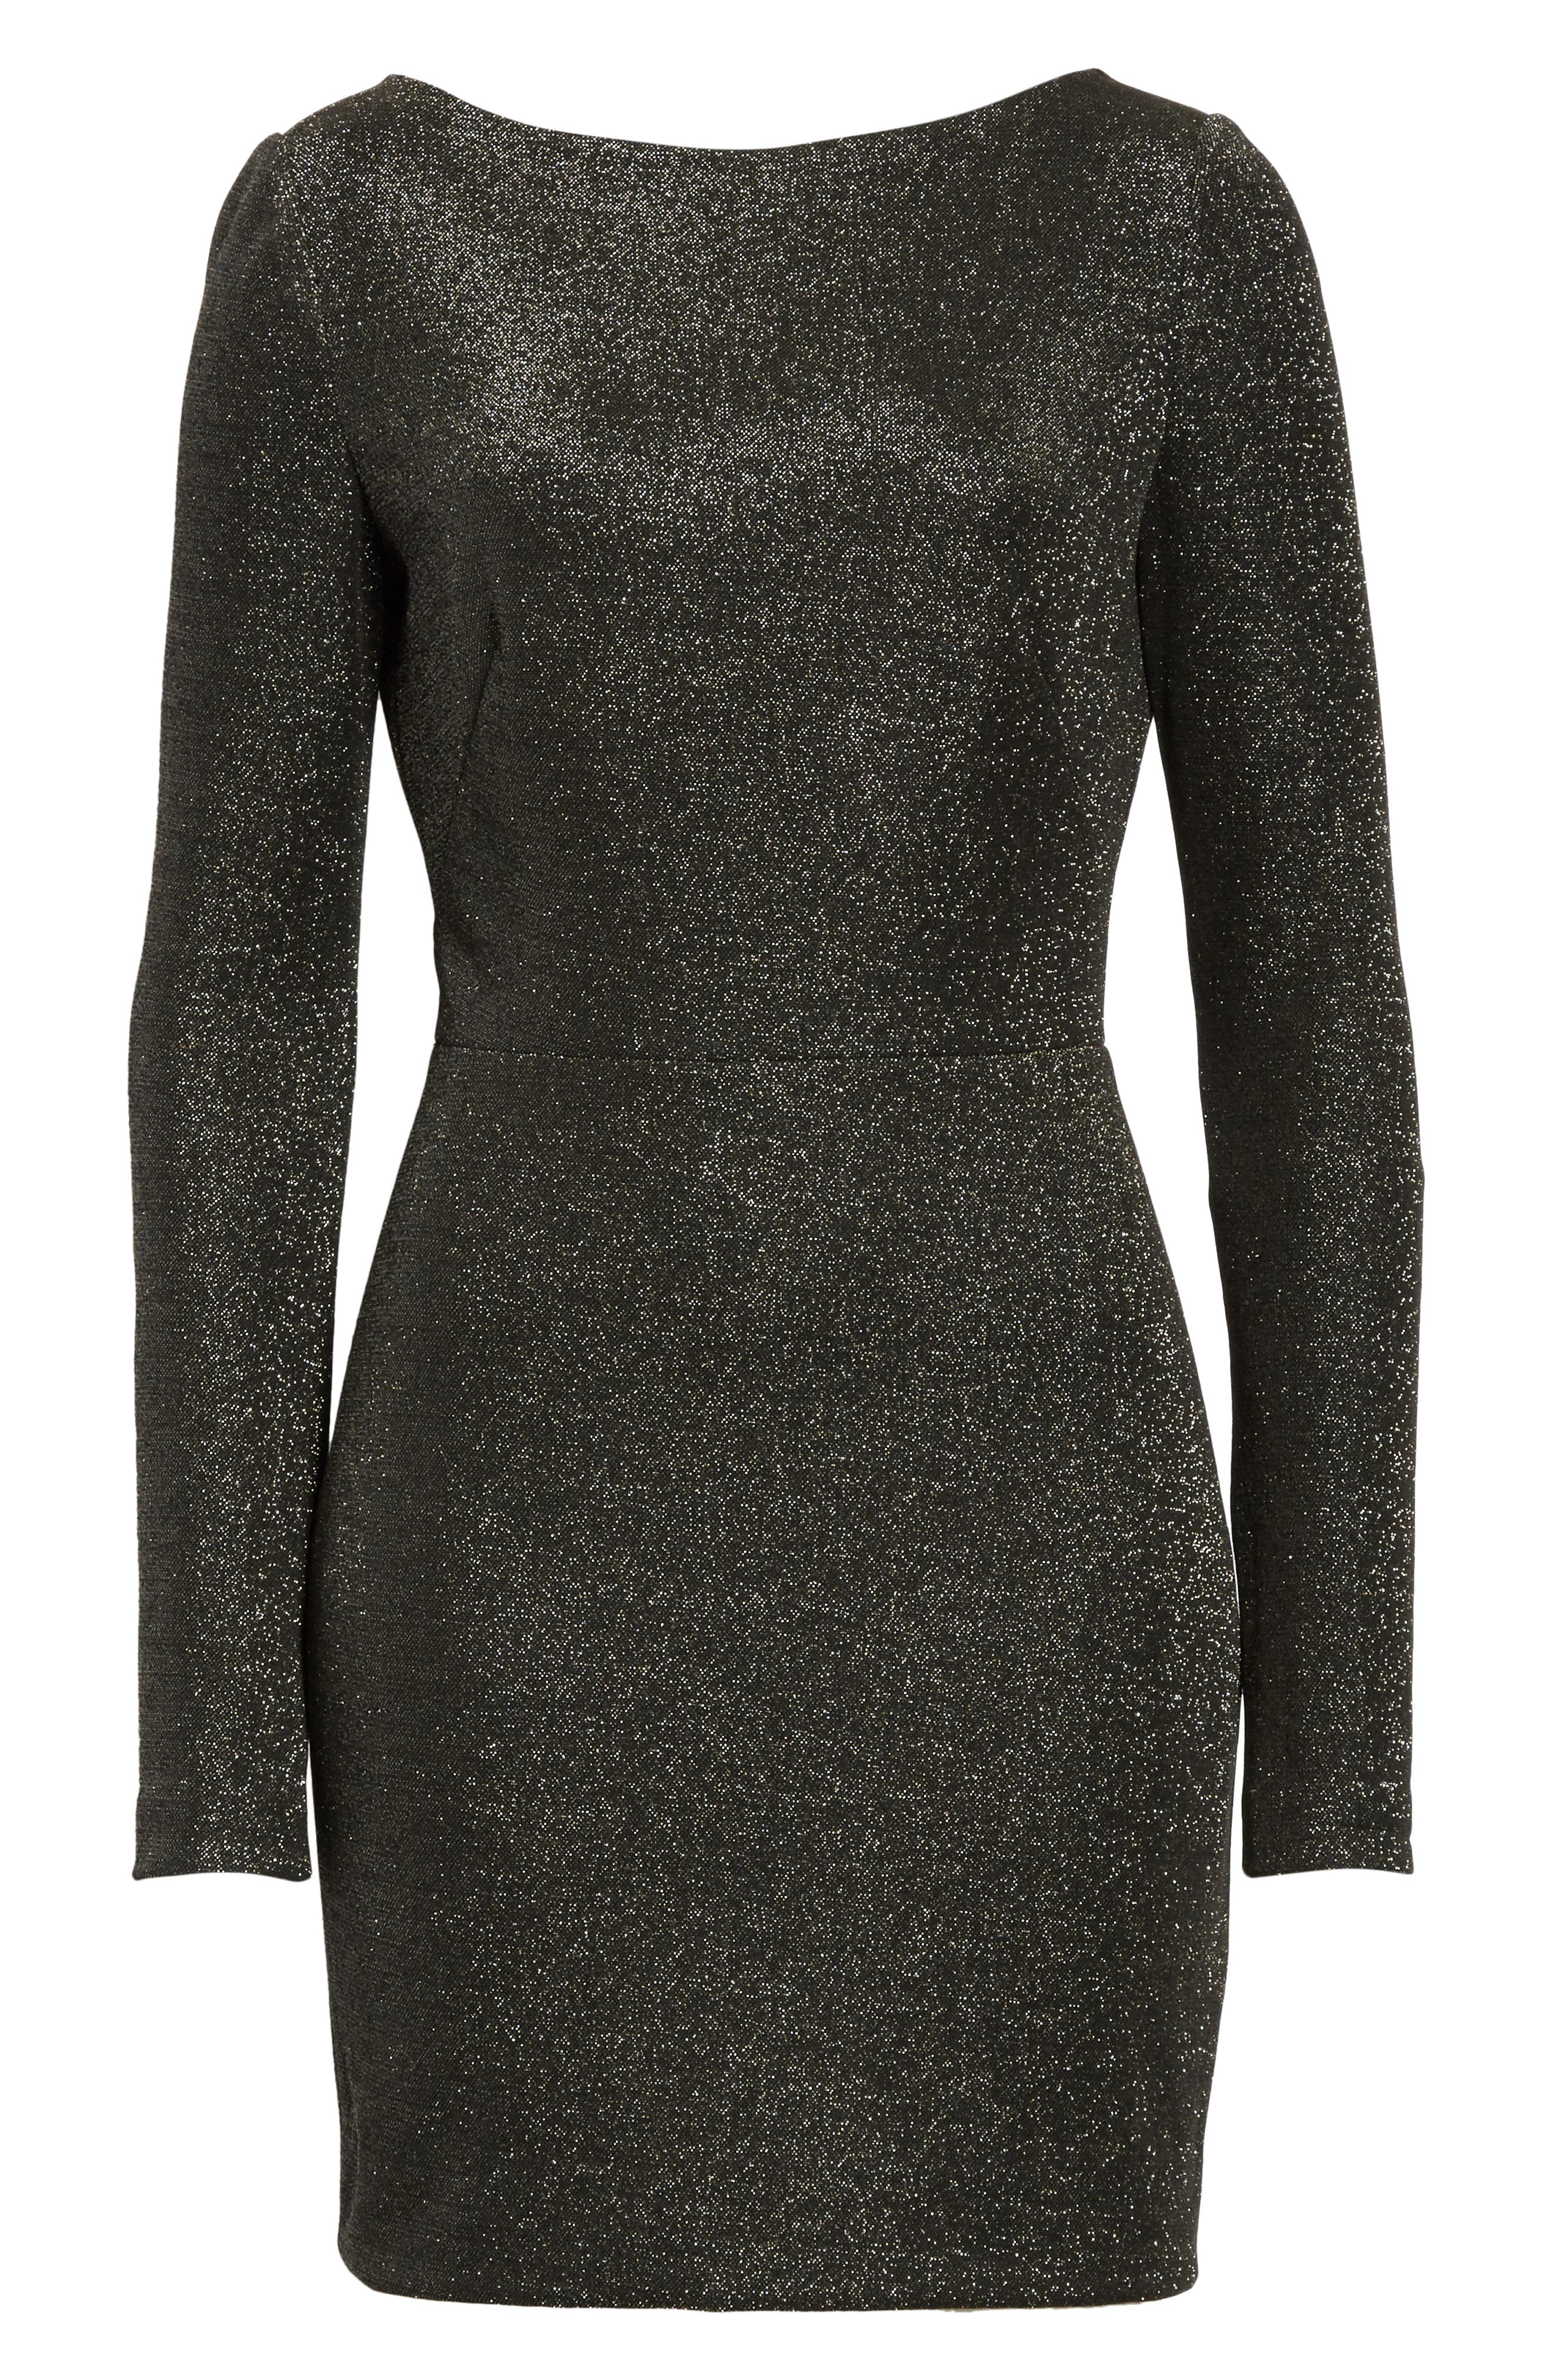 Diane von Furstenberg Sparkle Sheath Minidress,                             Alternate thumbnail 6, color,                             Black